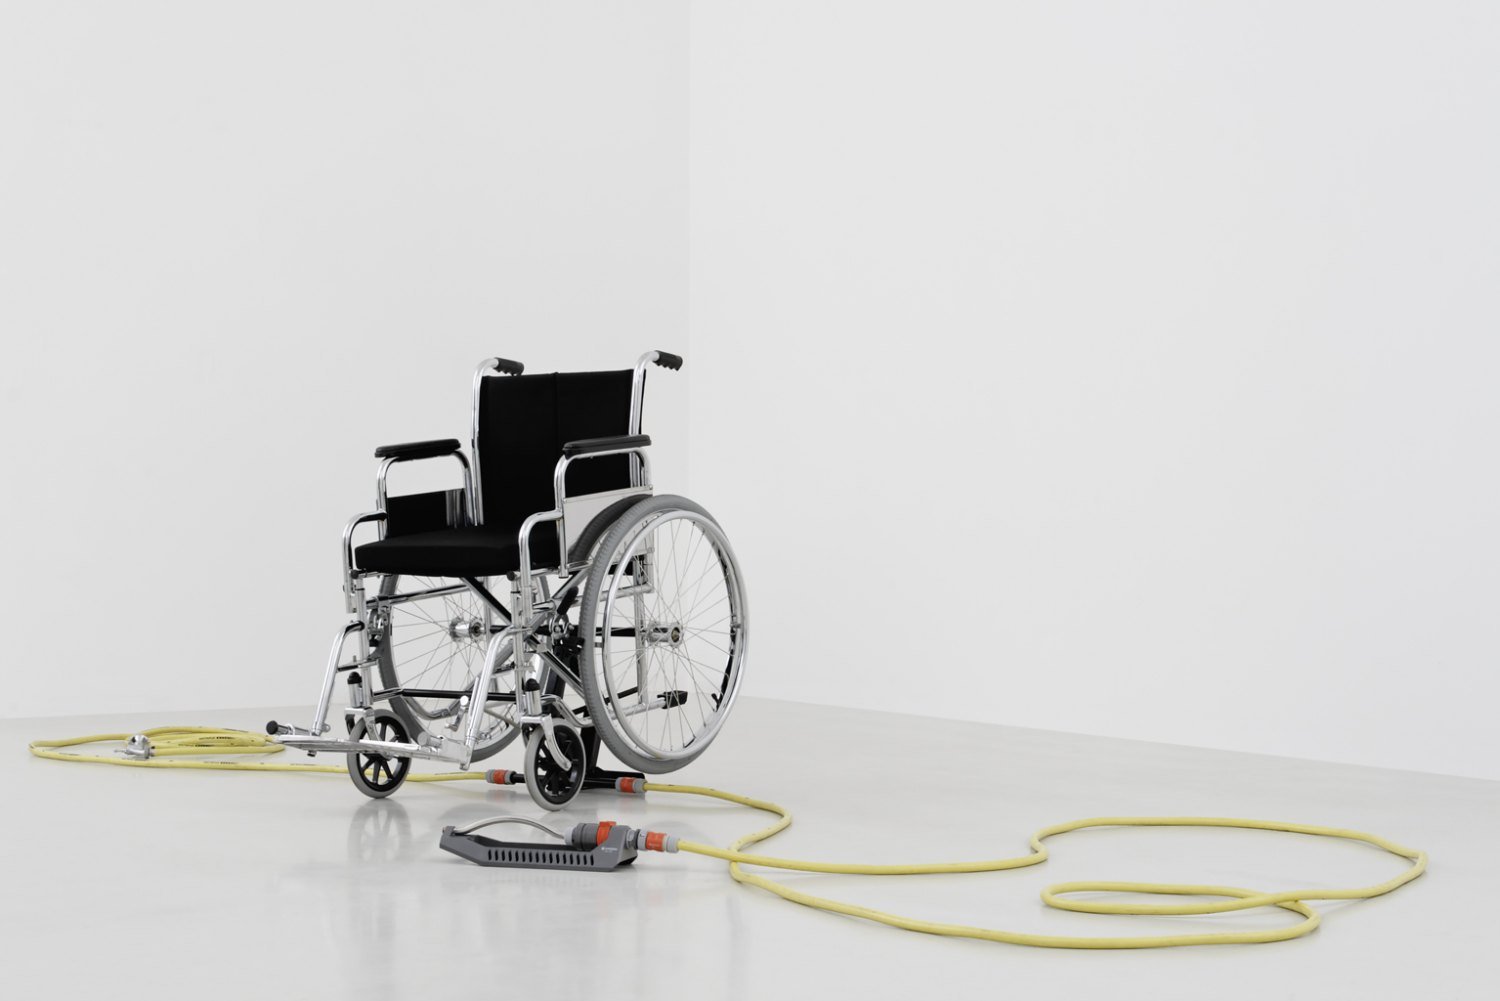 Andreas Slominski Untitled, 2000 Wheelchair, garden hose, sprinkler, plastic, metal, 112 × 66 × 96 cm